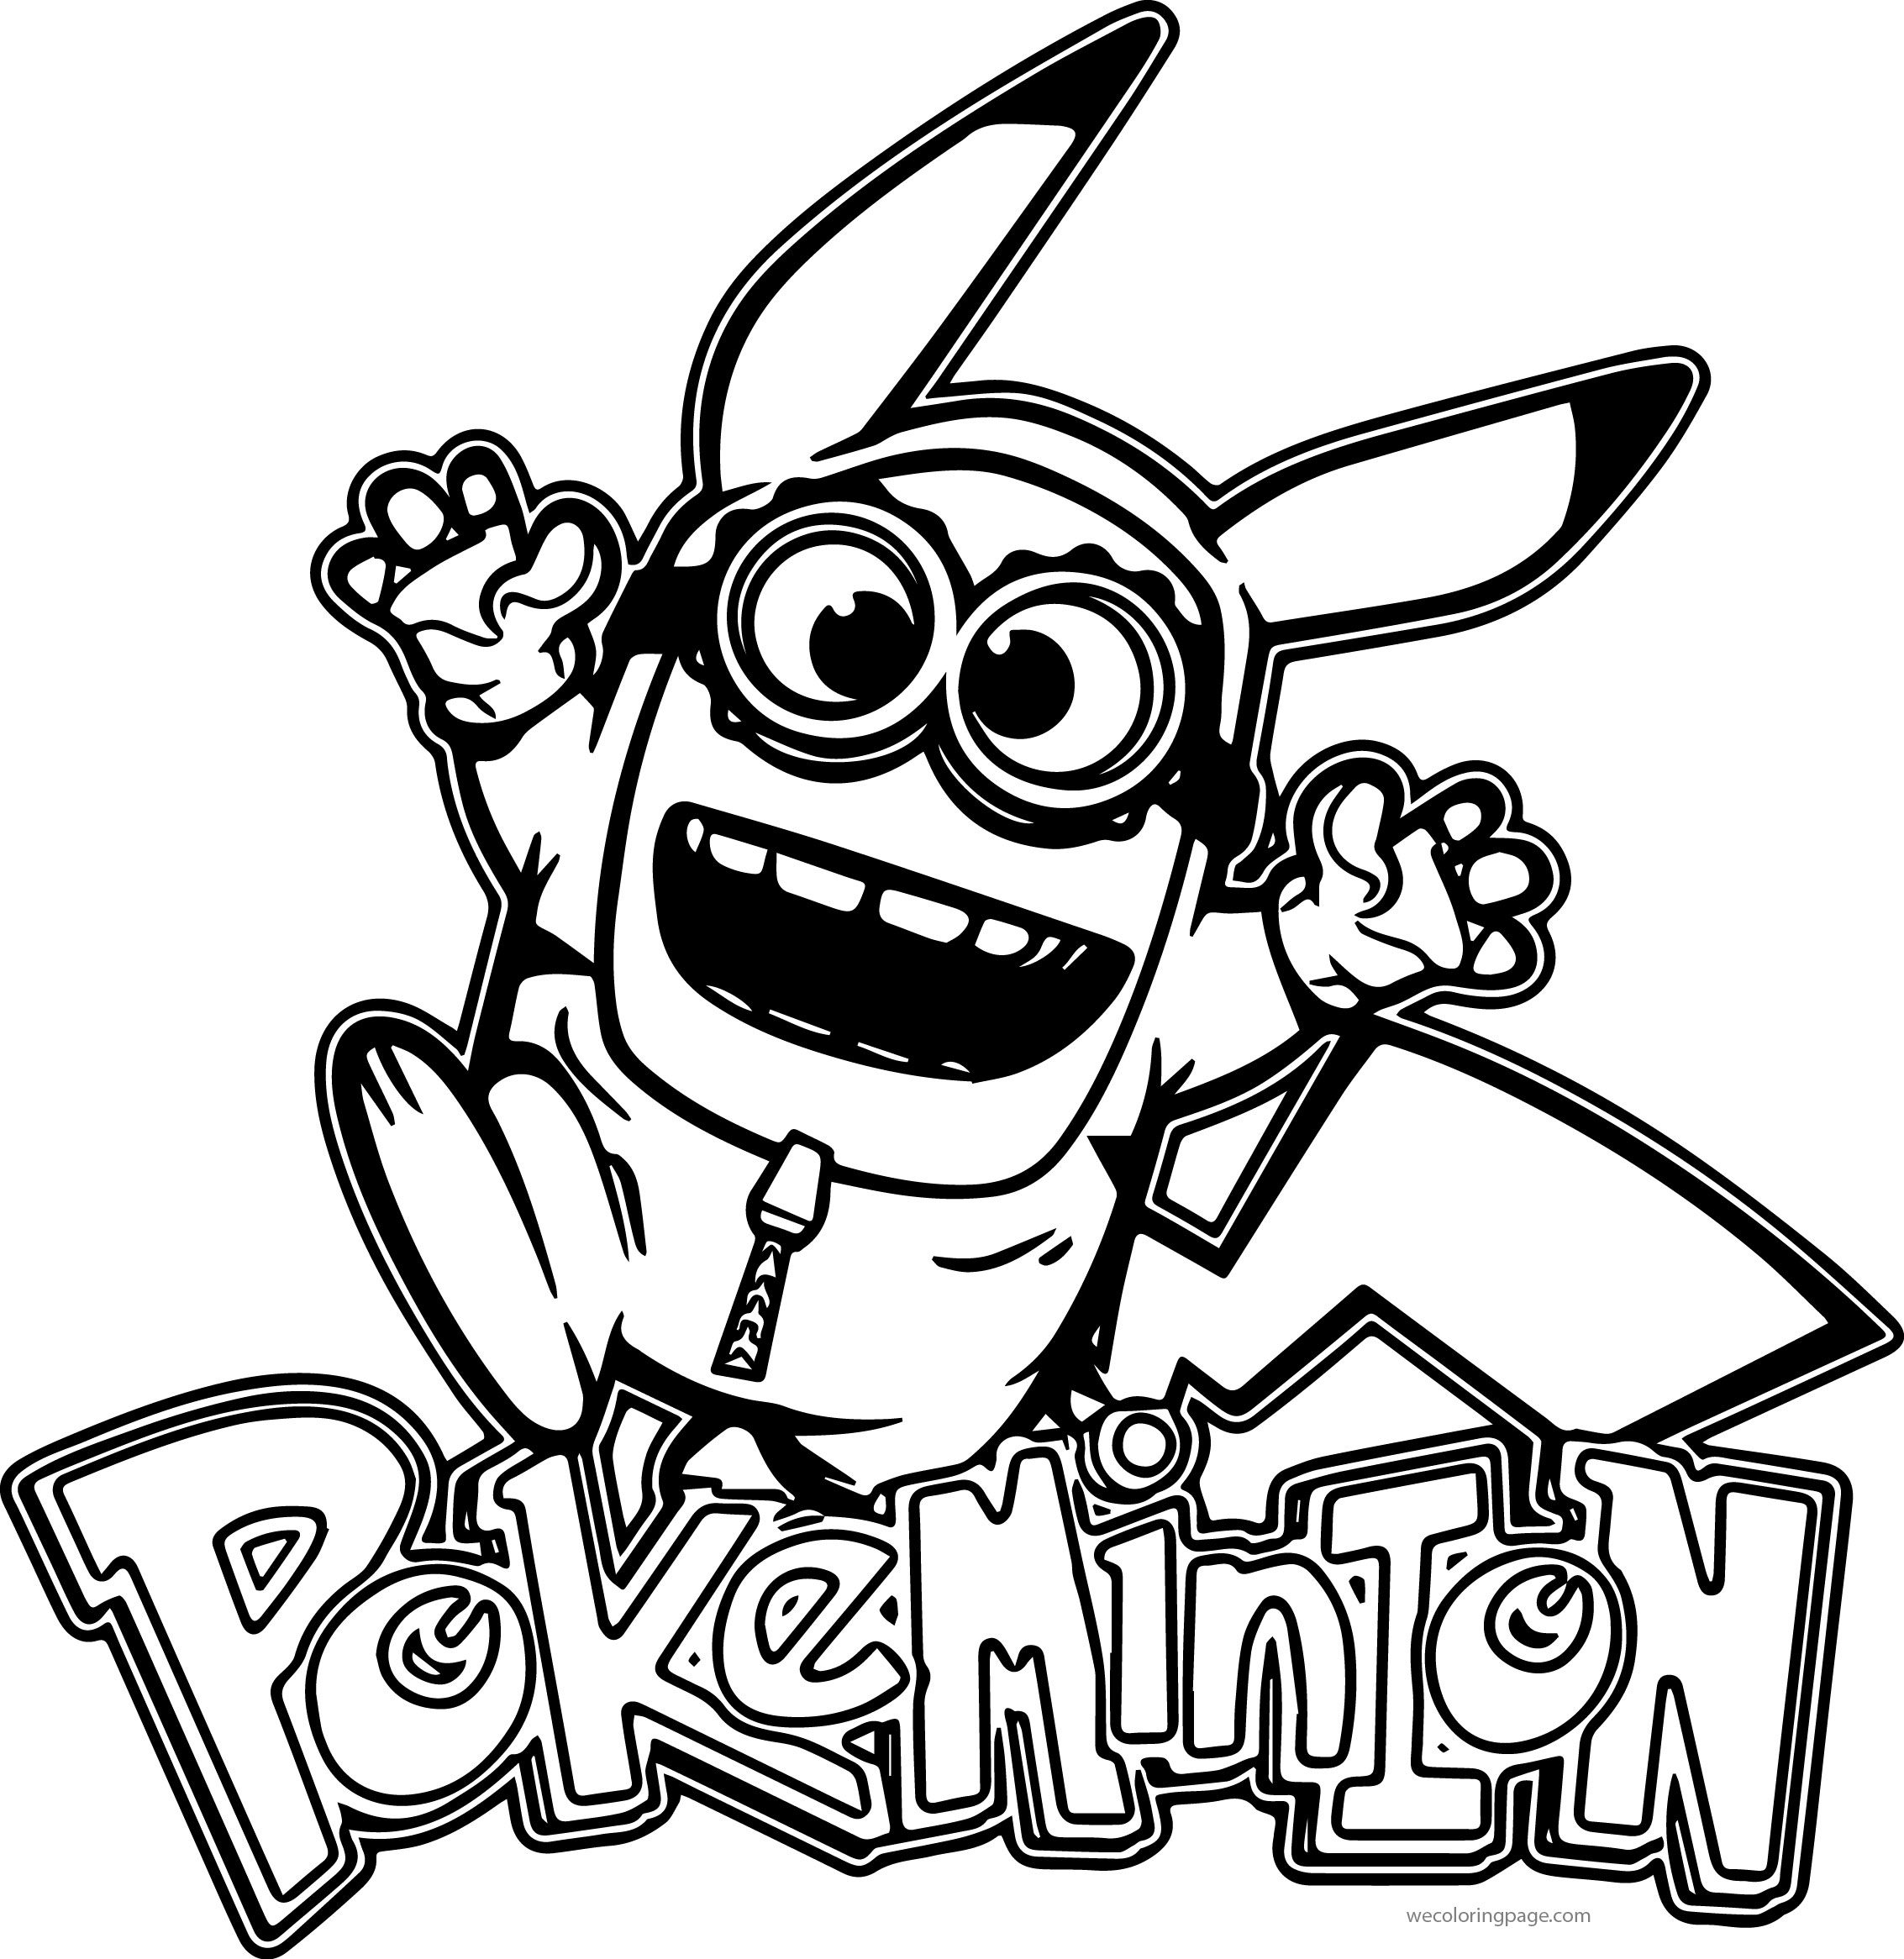 coloring printable minions minion coloring pages free download on clipartmag printable coloring minions